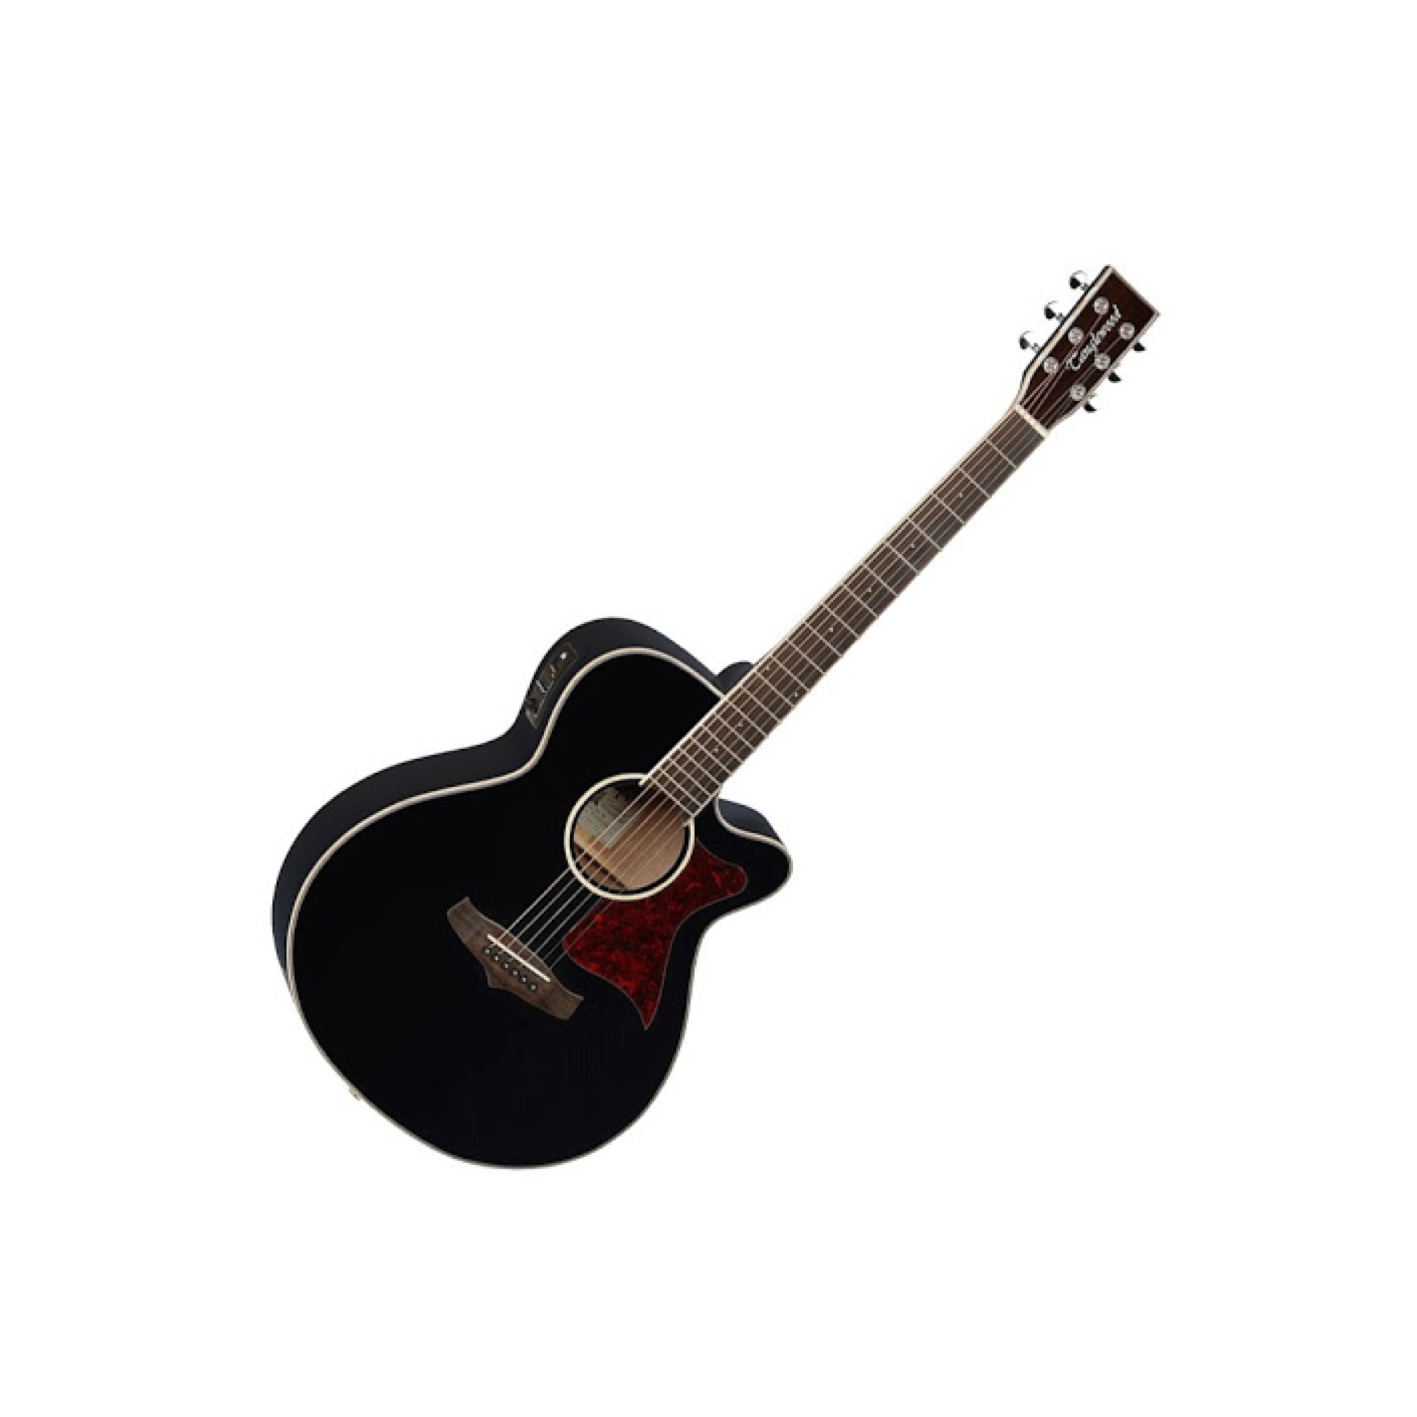 Tanglewood Winterleaf Super Folk guitar in black gloss TW4-BK